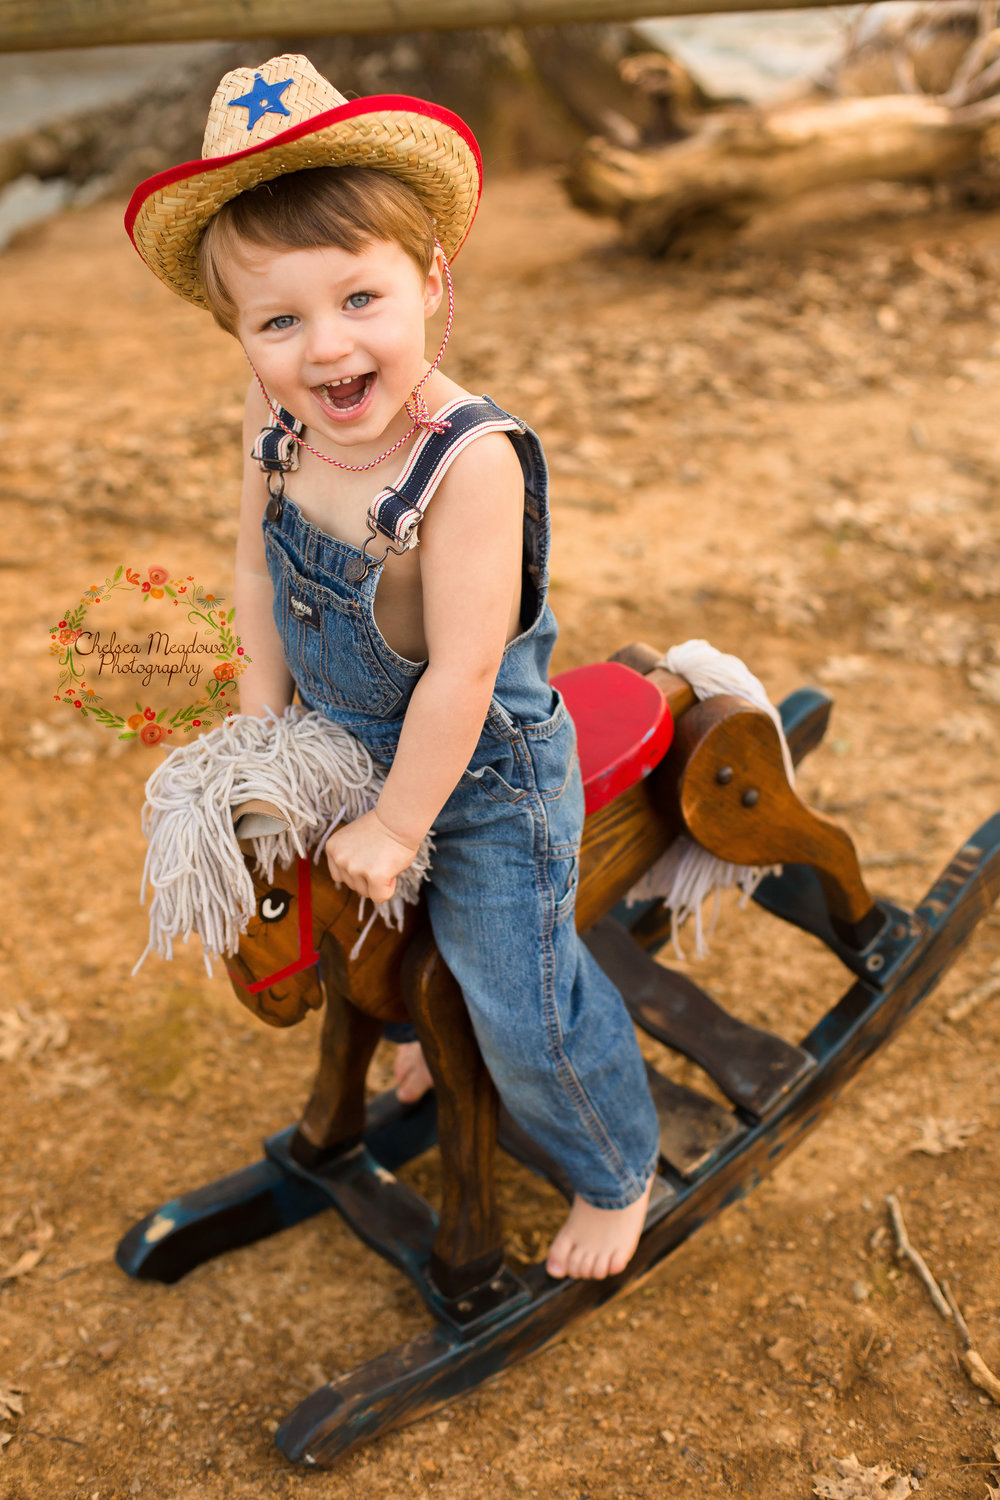 Grayson Cowboy Photos - Nashville family Photographer - Chelsea Meadows Photography (12)_edited-1.jpg